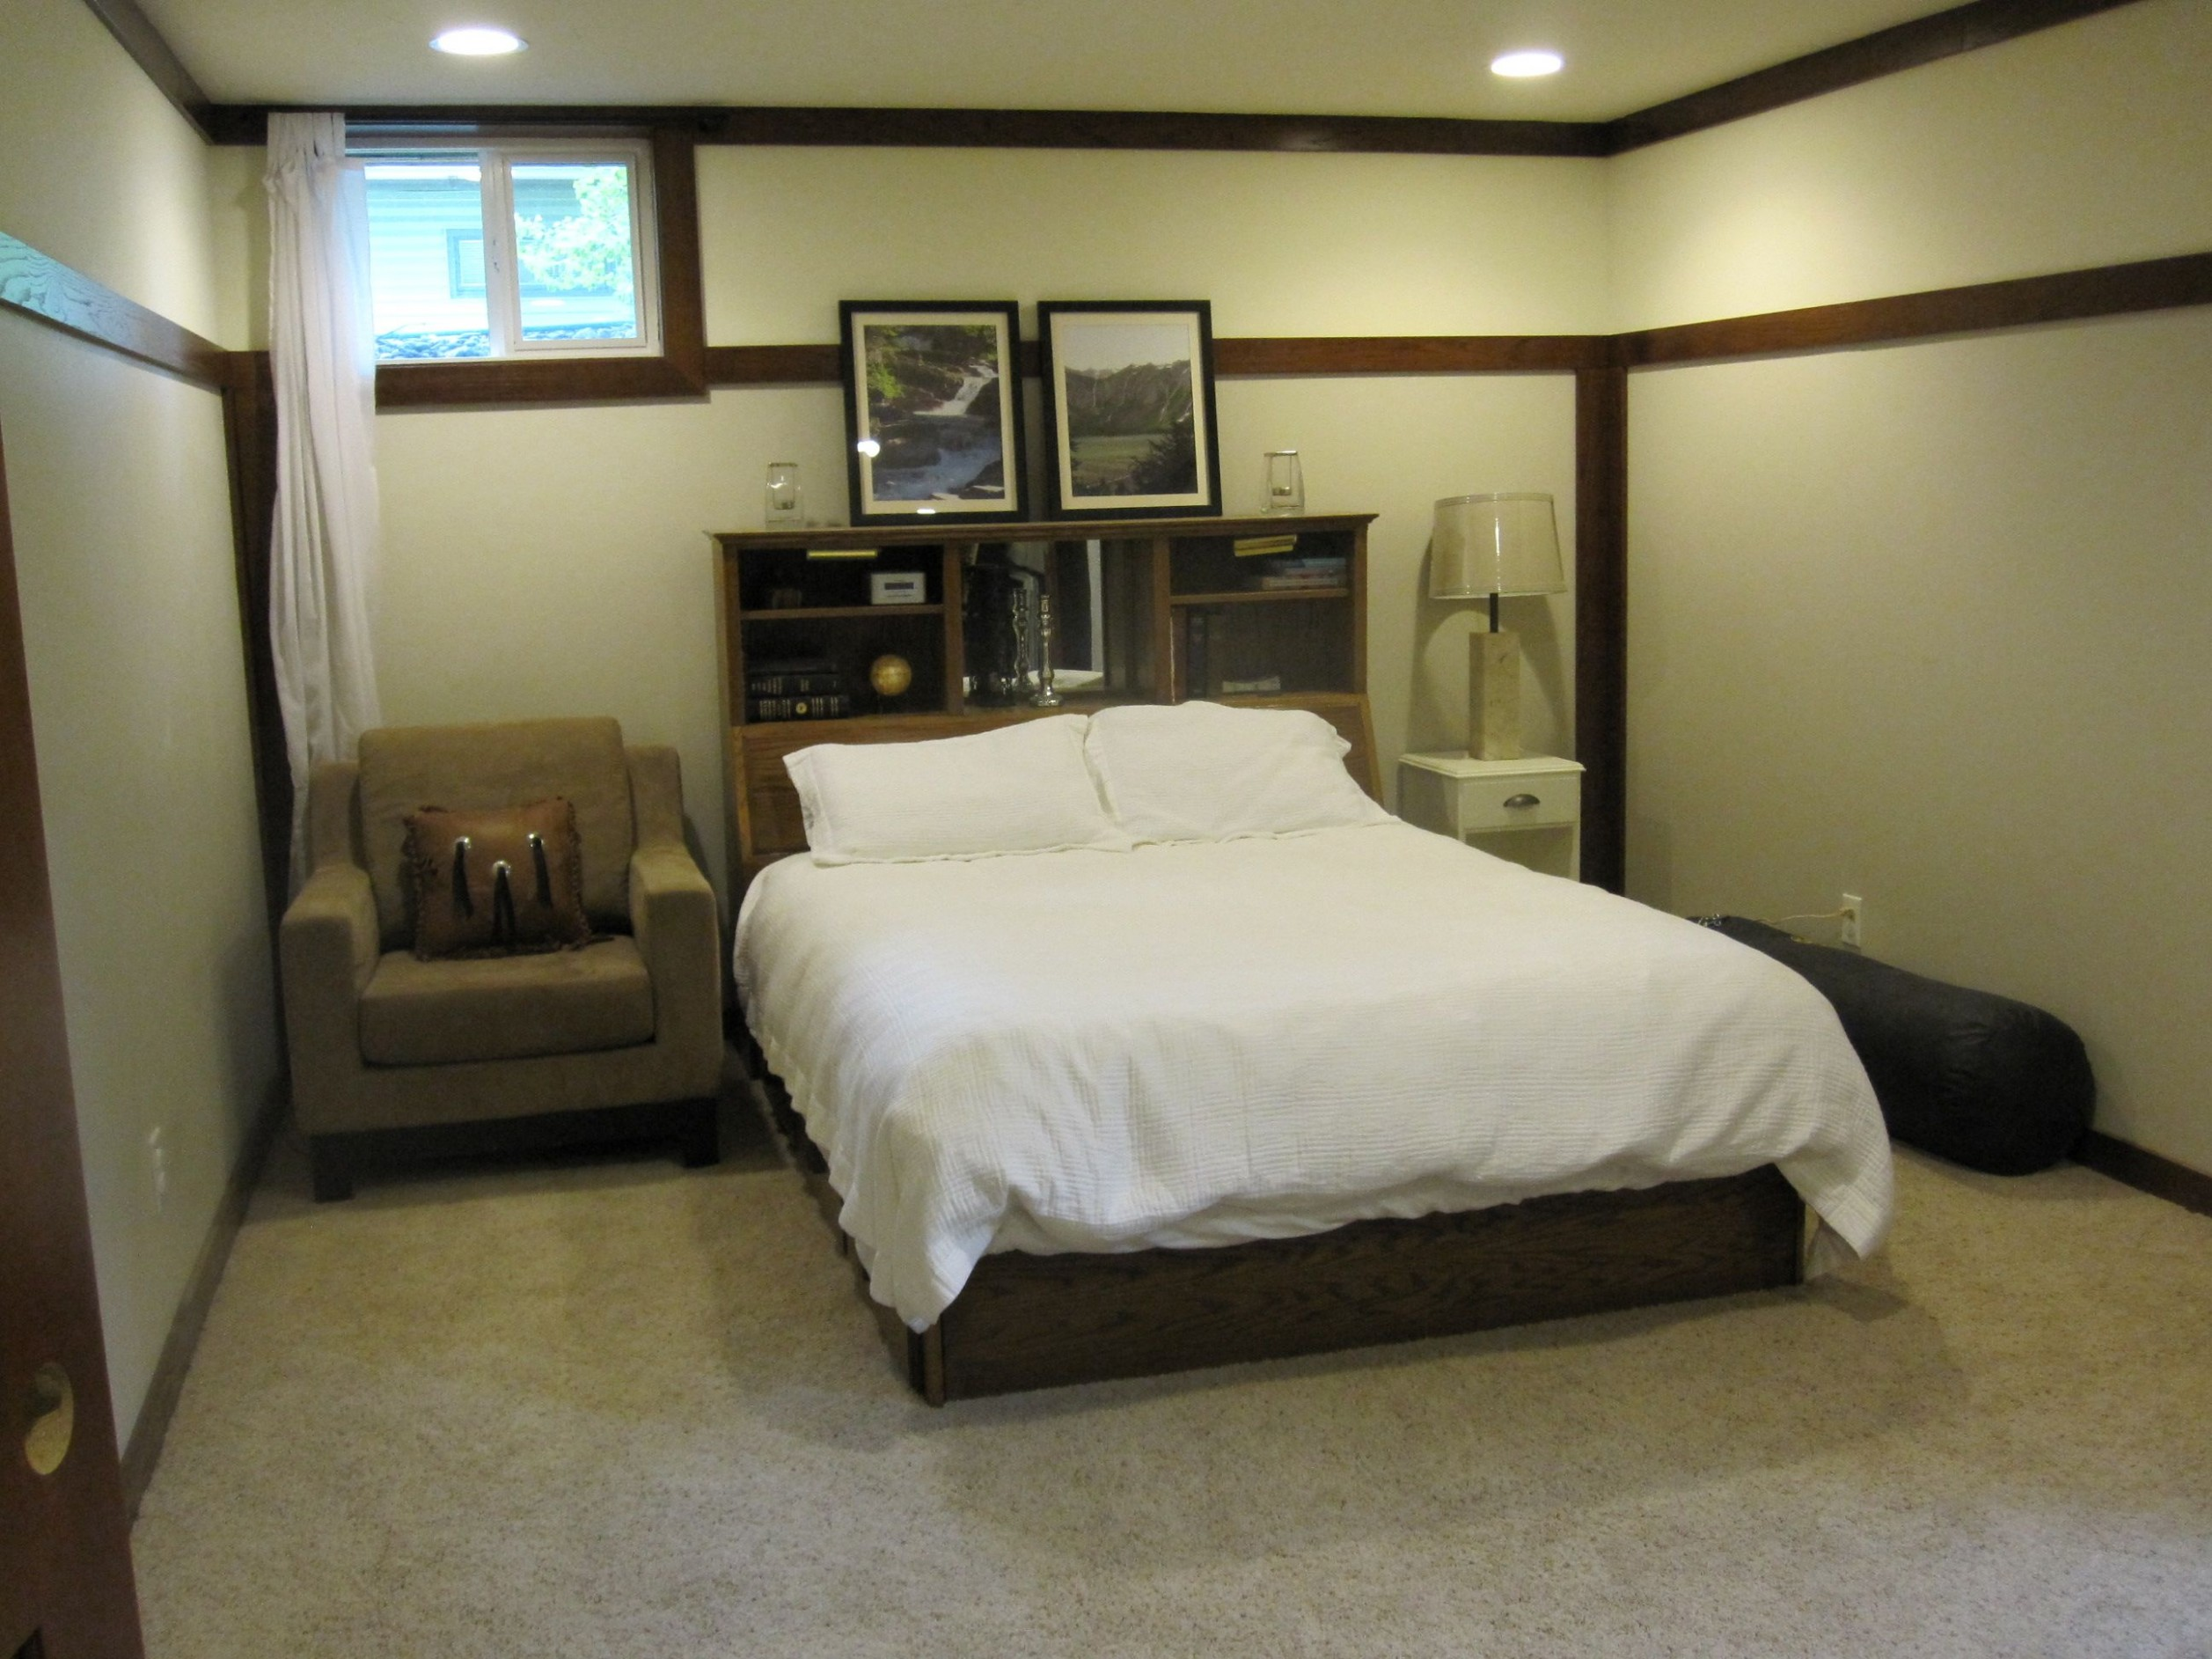 How To Decorate A Room With No Windows - Bedroom Ideas No Windows